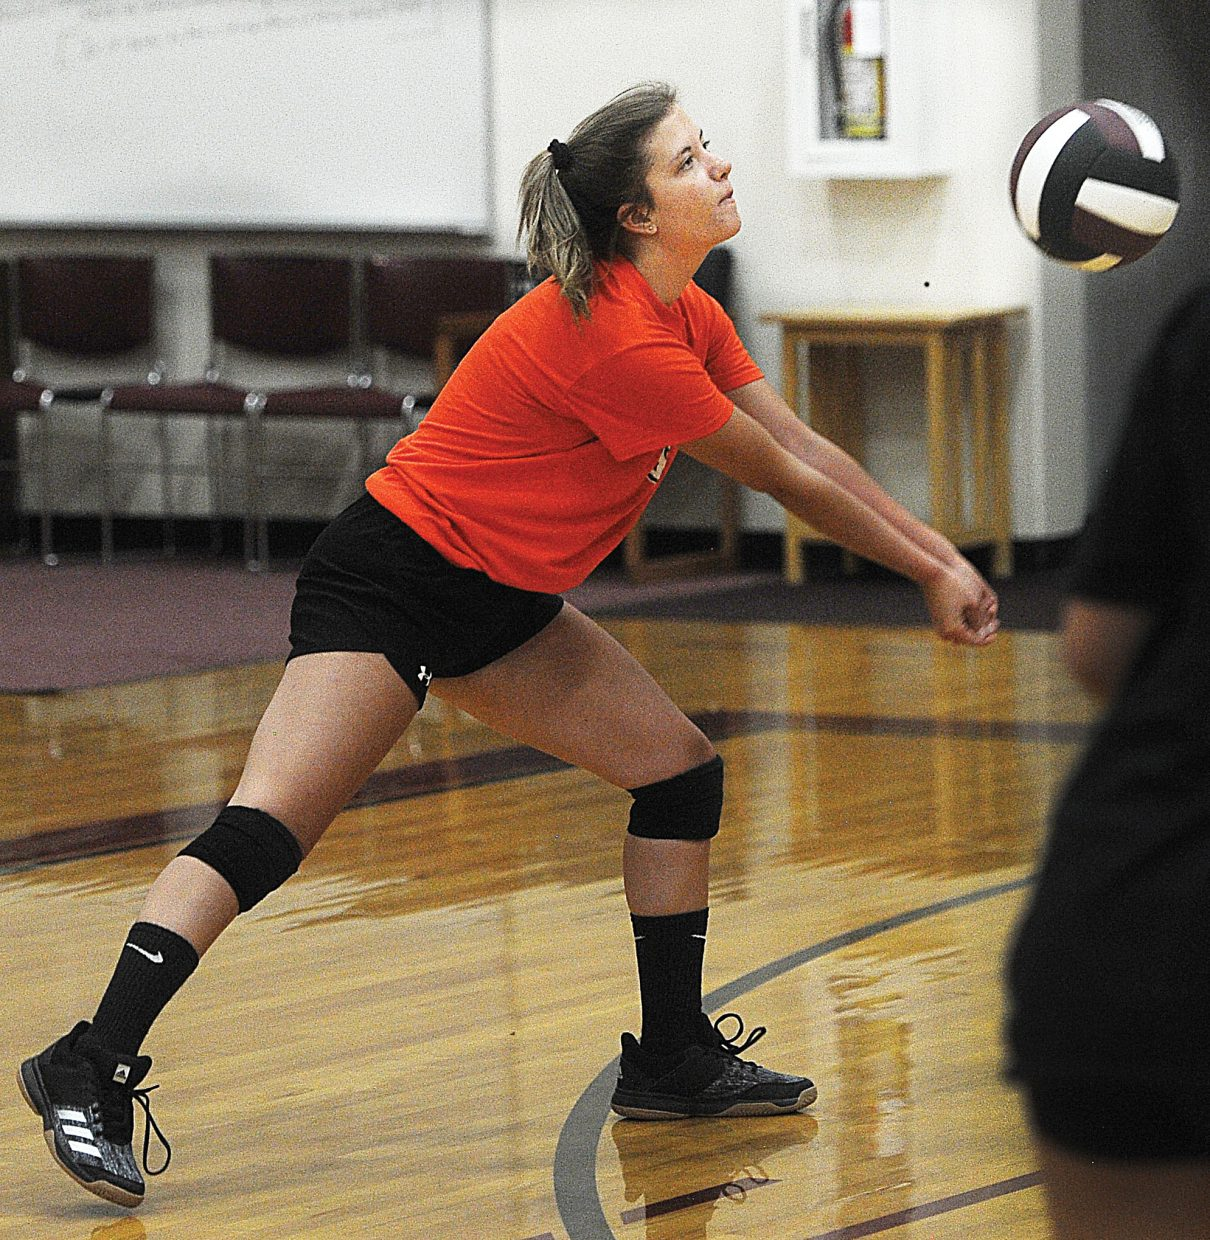 Senior defensive specialist Katie Olinger digs a ball at practice at Soroco High School on Aug. 22. Olinger is hoping her team can earn a playoff berth this season.